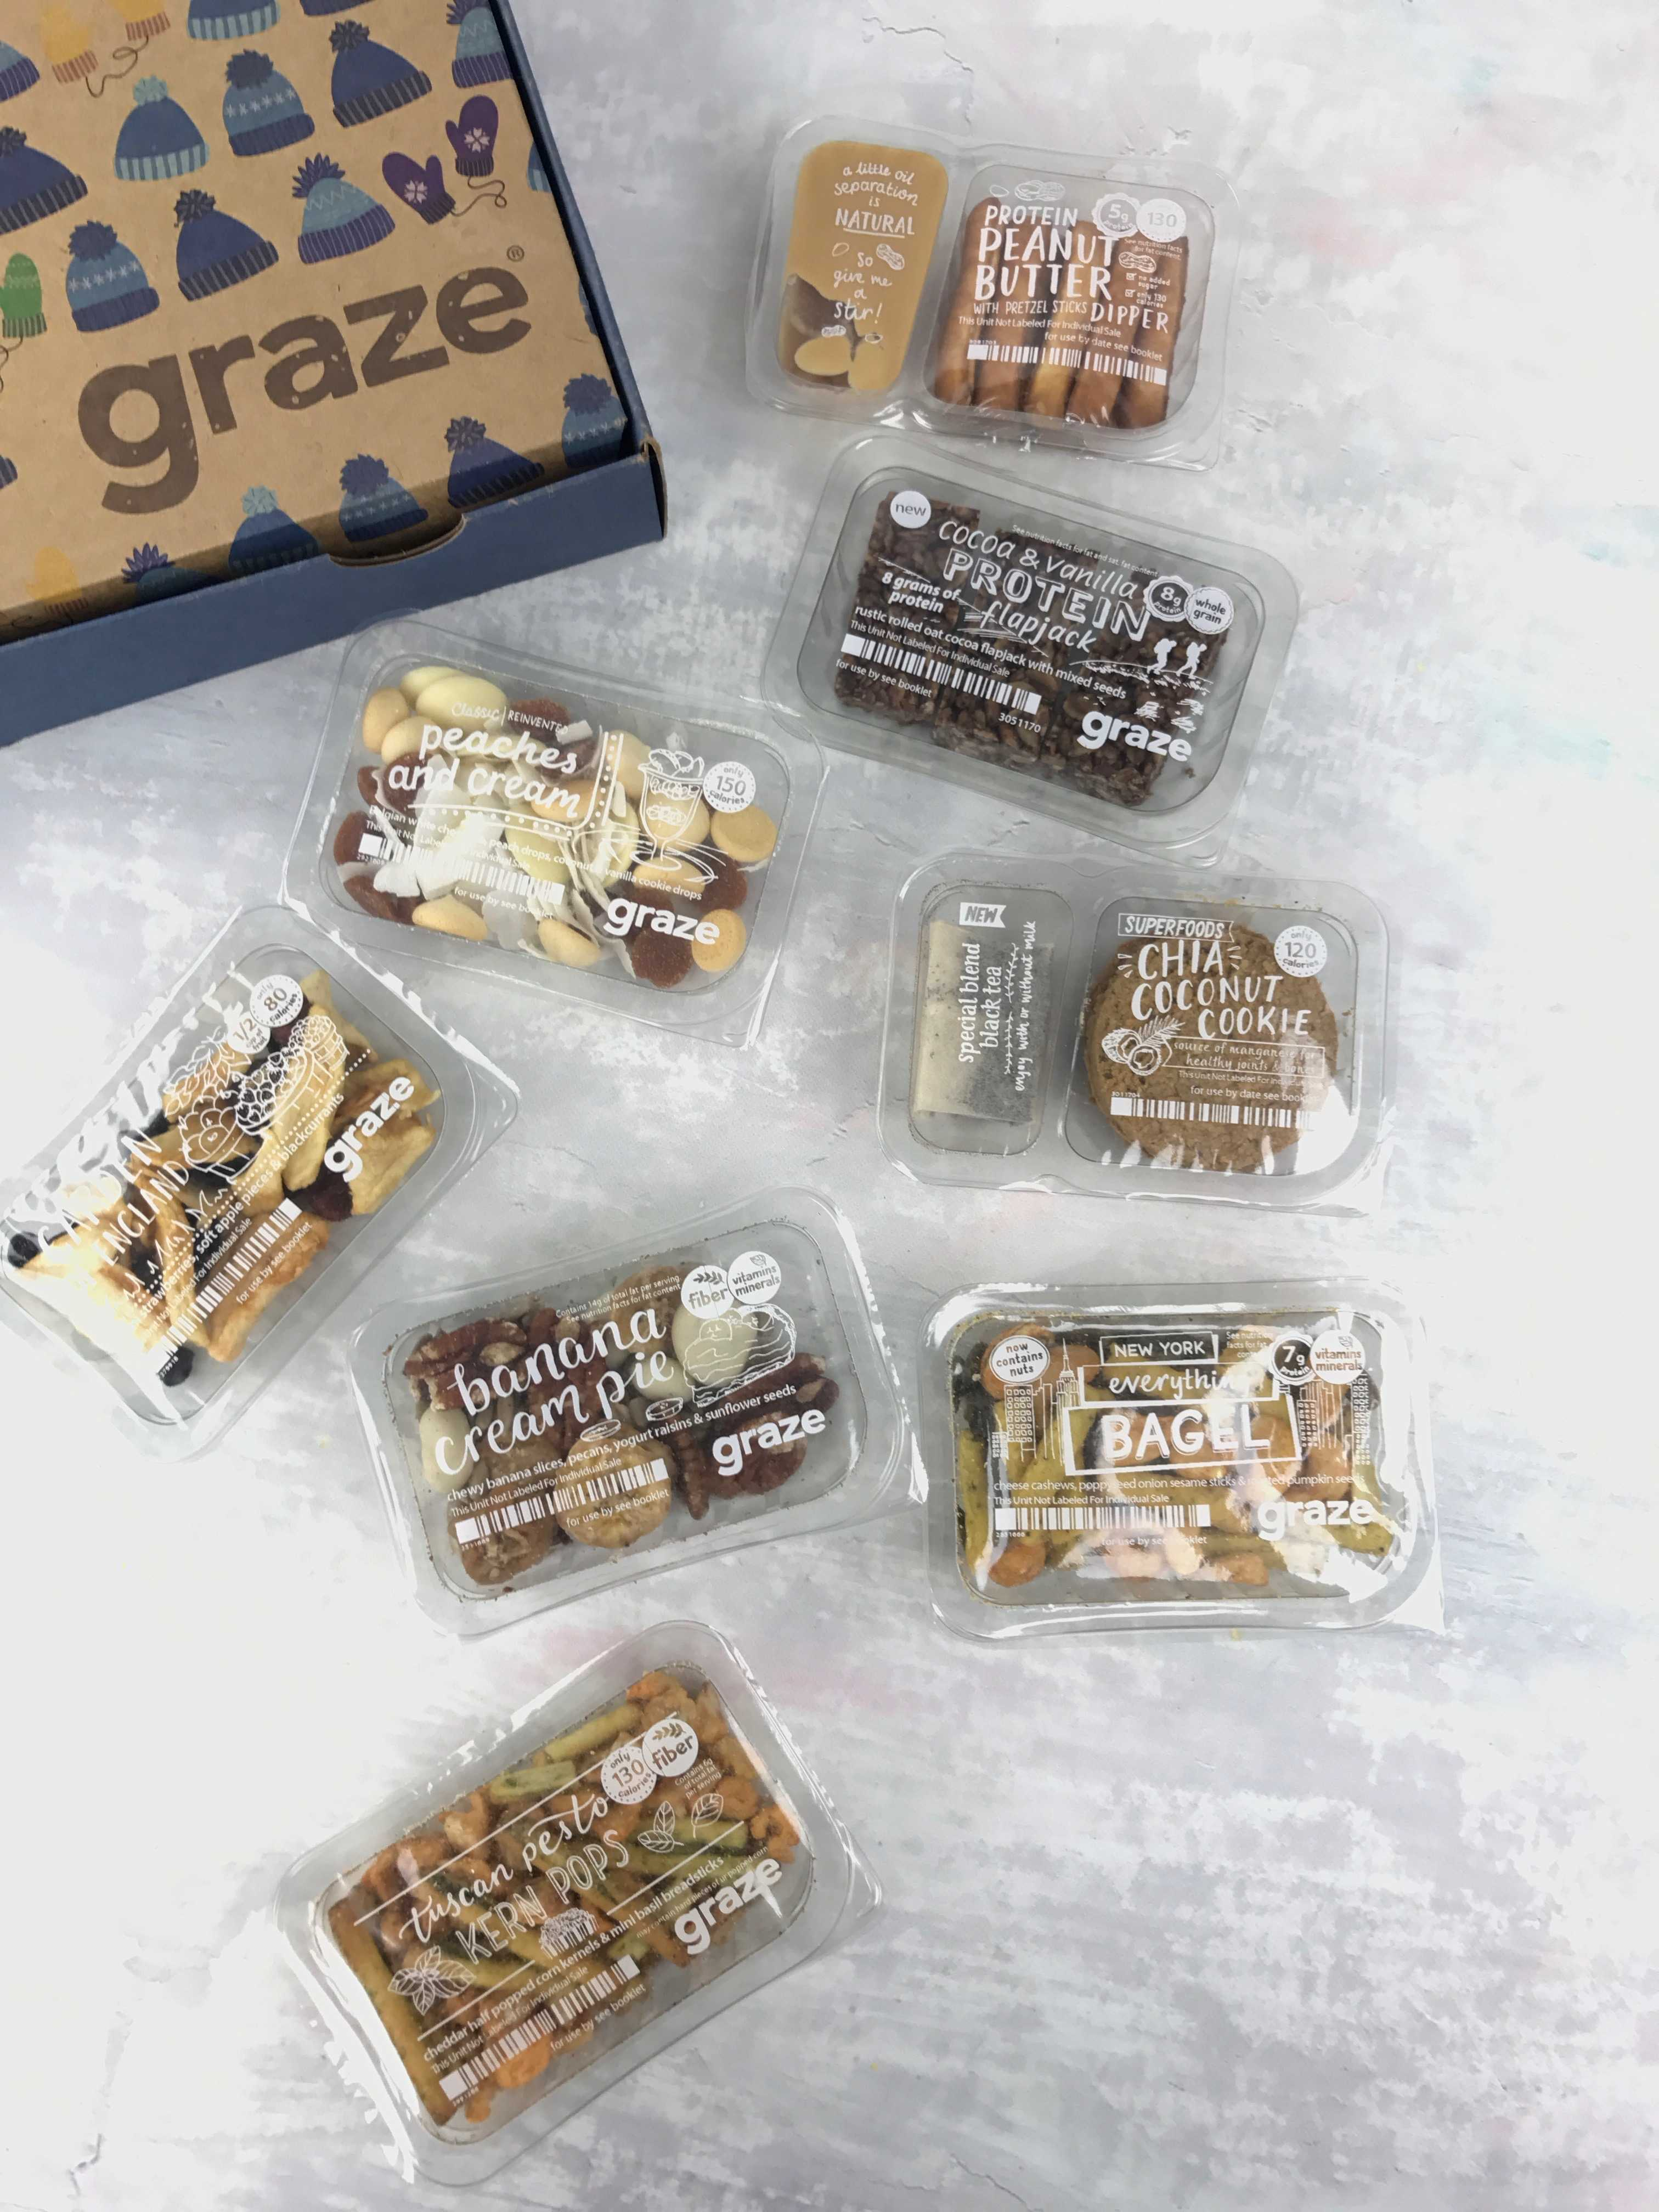 Graze Variety Box Review & Free Box Coupon! December 2016